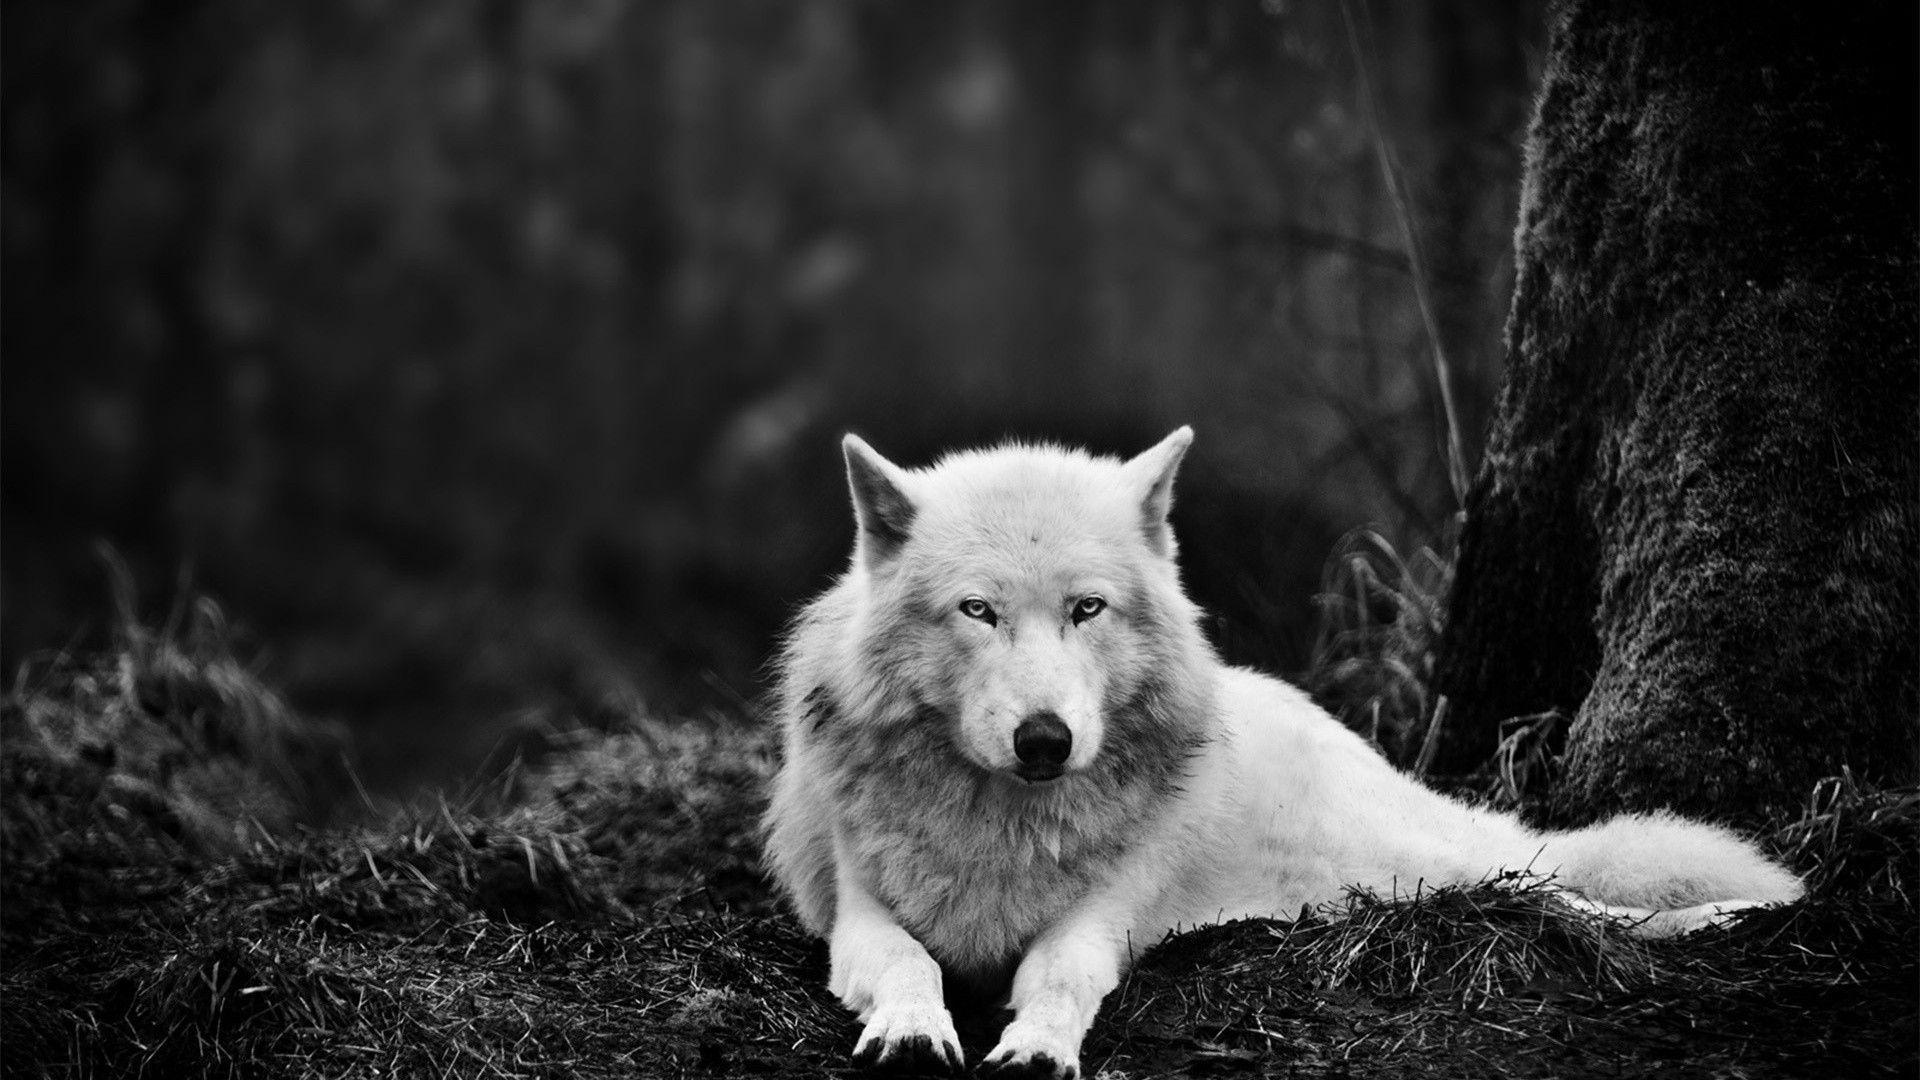 Pin 1920x1080 White Wolf In The Wild Desktop PC And Mac Wallpapers